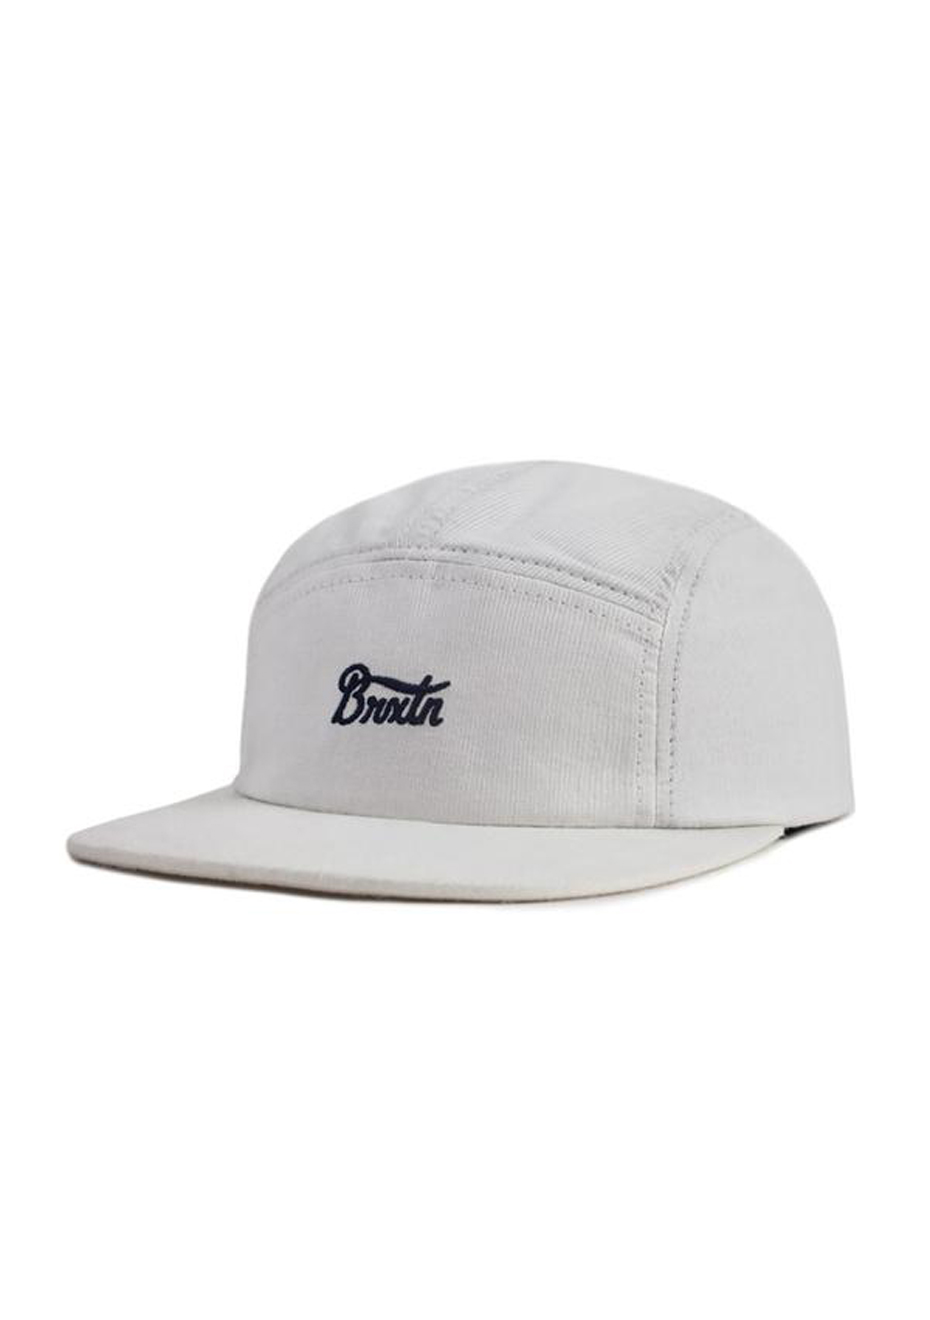 2d240382f702f ... france brixton potrero 5 panel cap off white mens streetwear sale  onceit eb404 f8be1